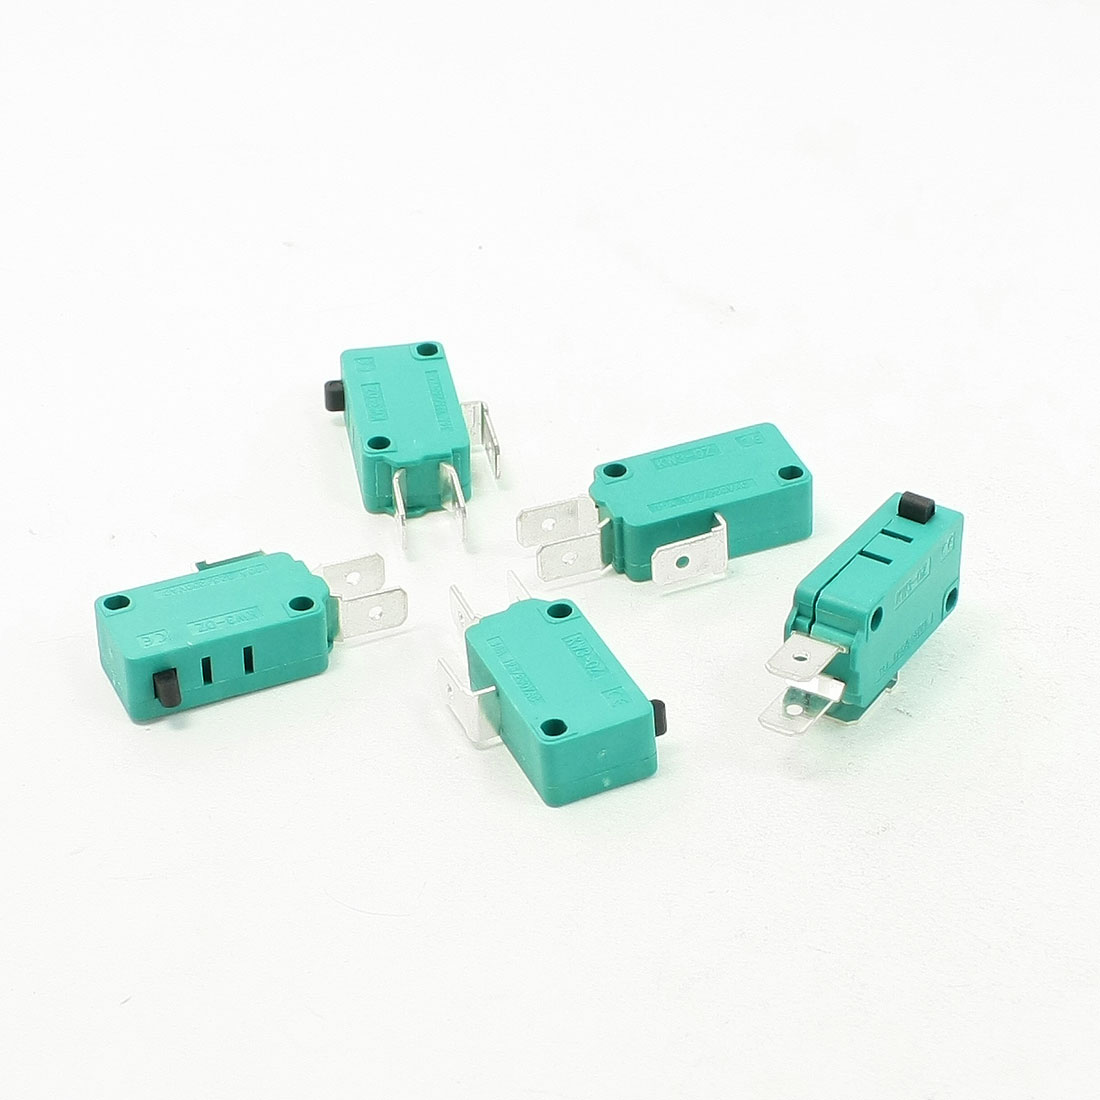 5 Pcs AC 250V 16A SPDT 3 Terminals Momentary Push Button Micro Switch Green